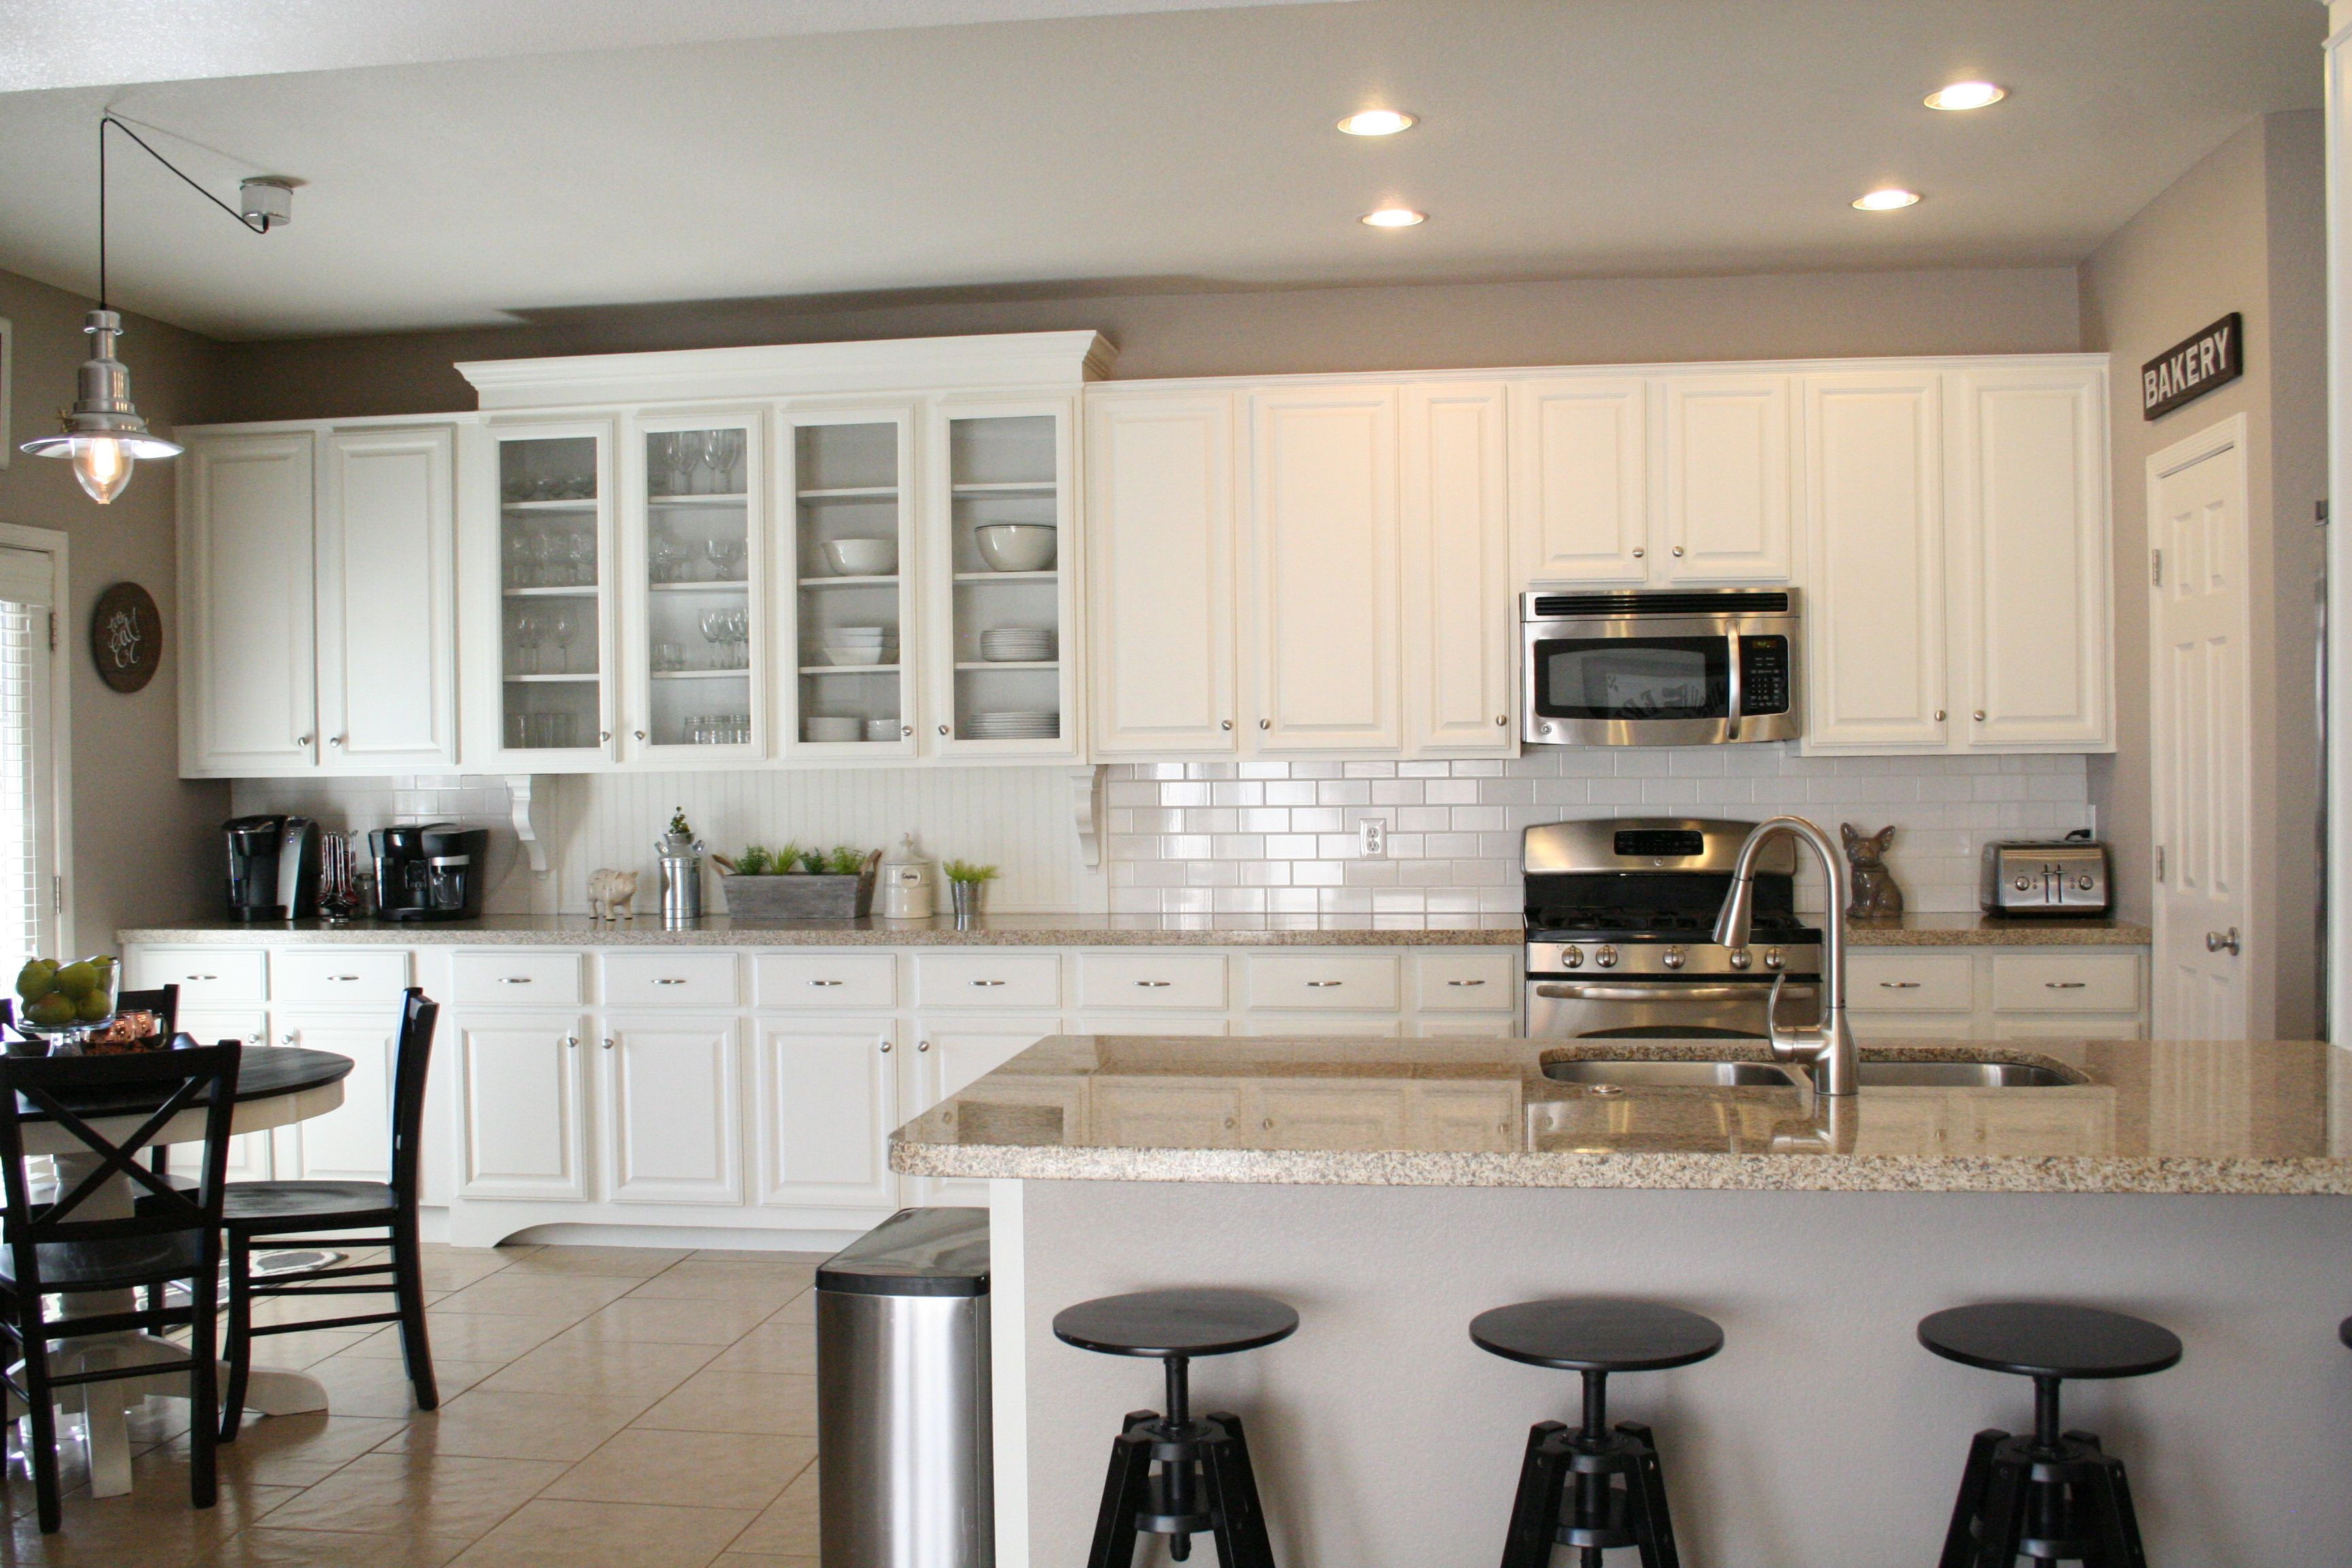 Sherwin Williams Pro Classic White Kitchen Cabinets Added Moldings And Feet Diy Kitchen Facelift With Images Classic White Kitchen Kitchen Facelift